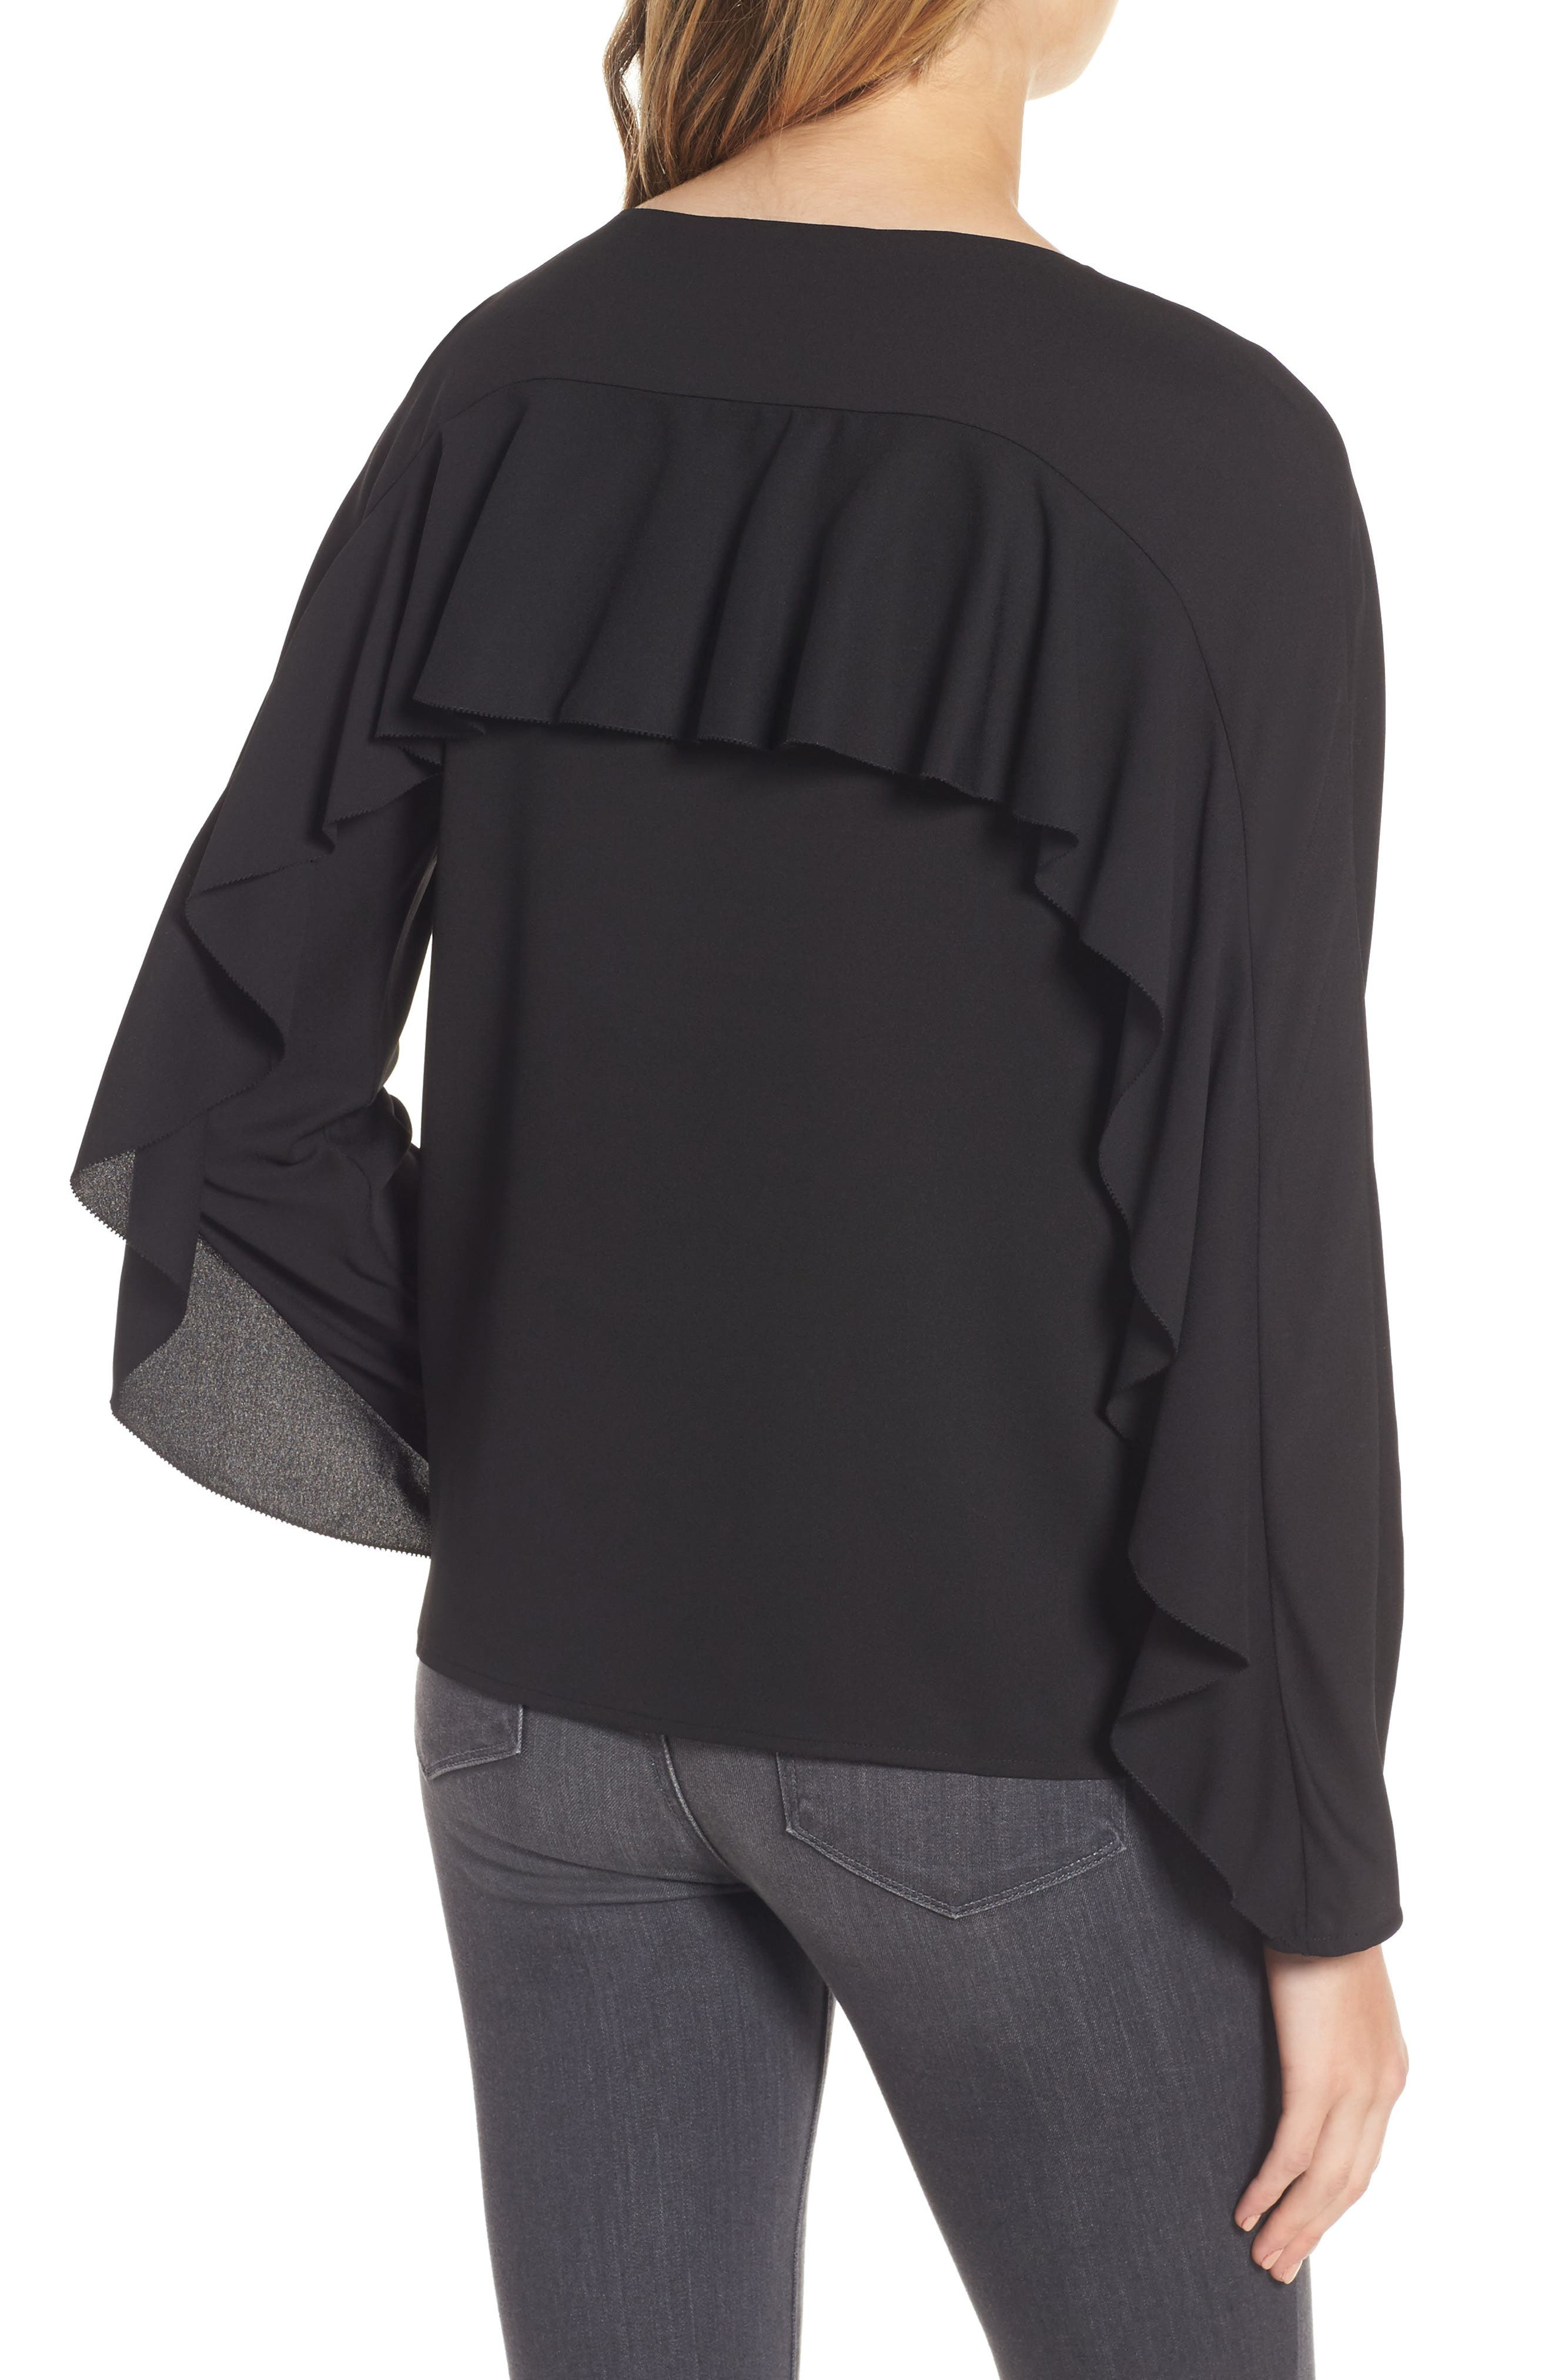 Selma Ruffle Blouse,                             Alternate thumbnail 2, color,                             001